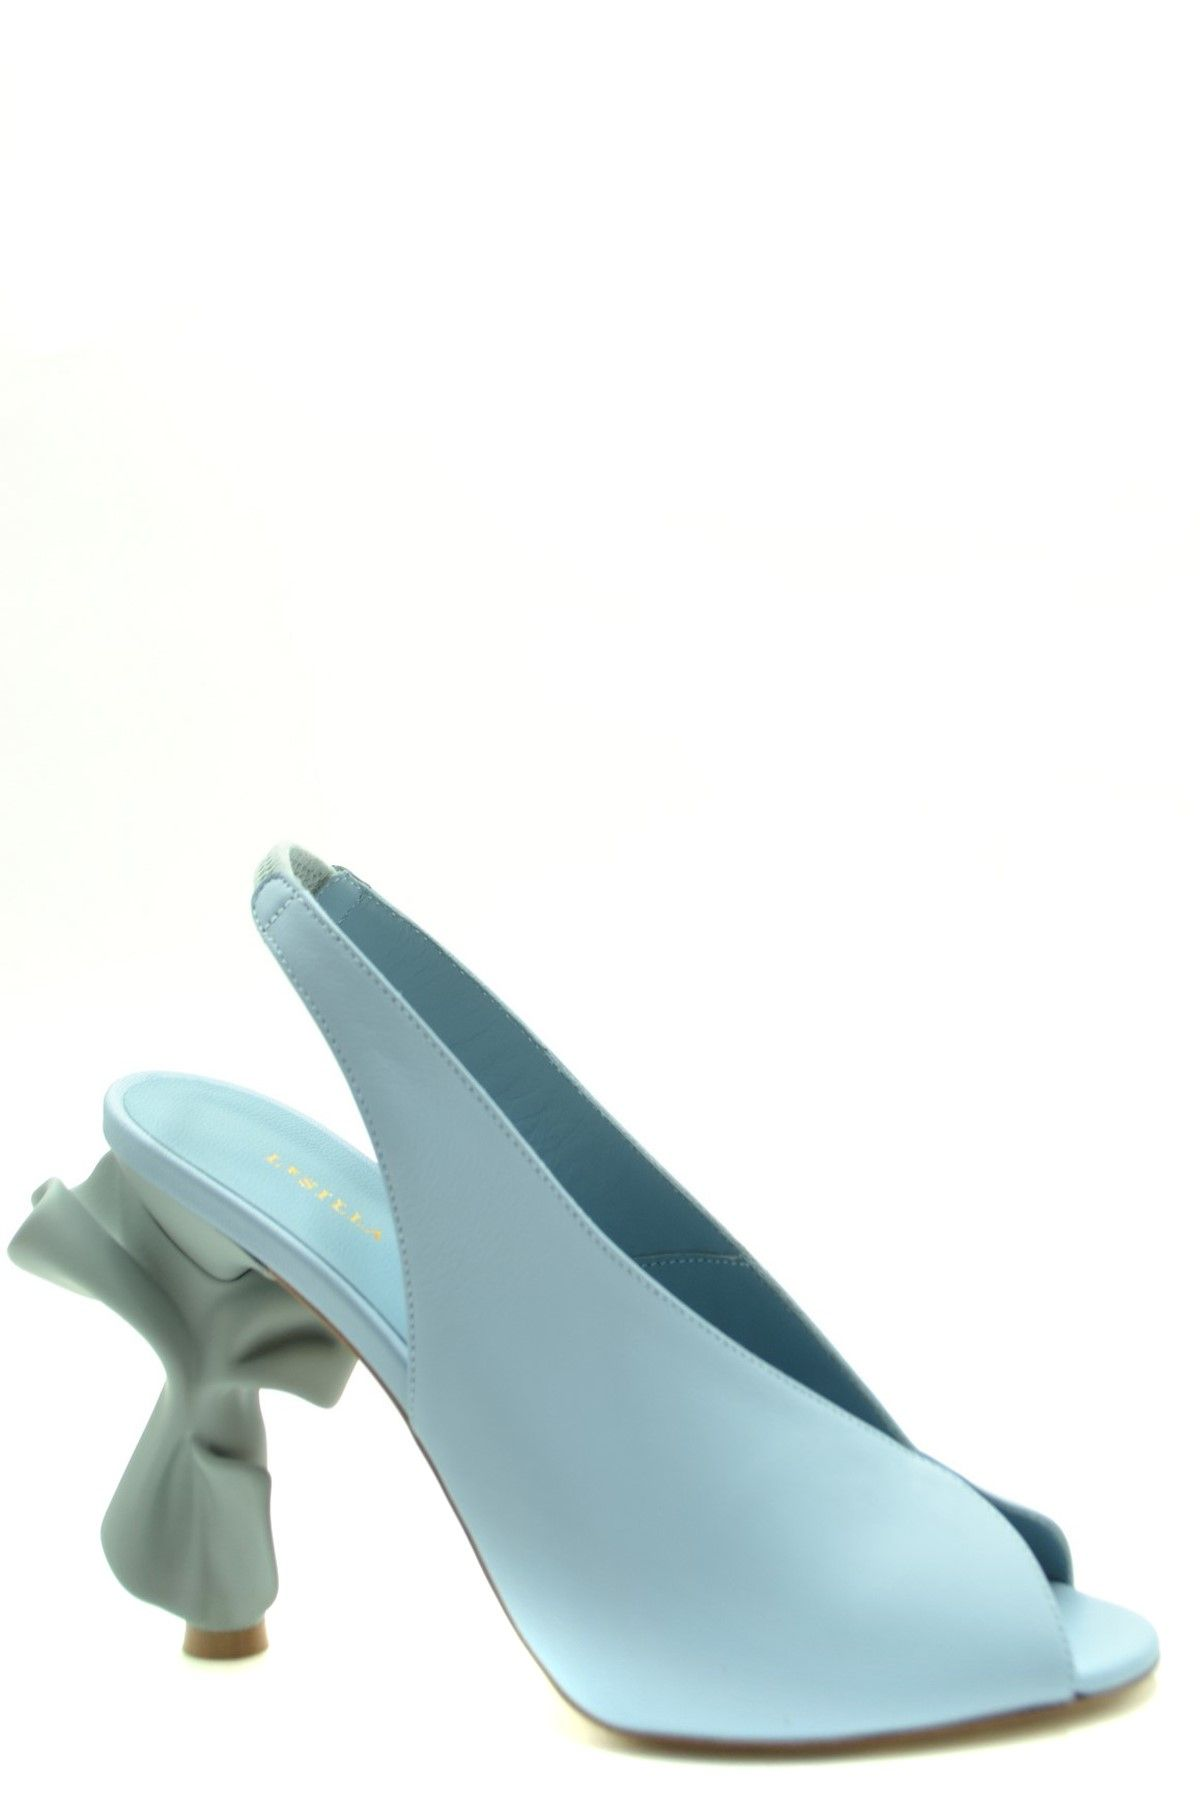 Le Silla LE SILLA WOMEN'S LIGHT BLUE LEATHER SANDALS